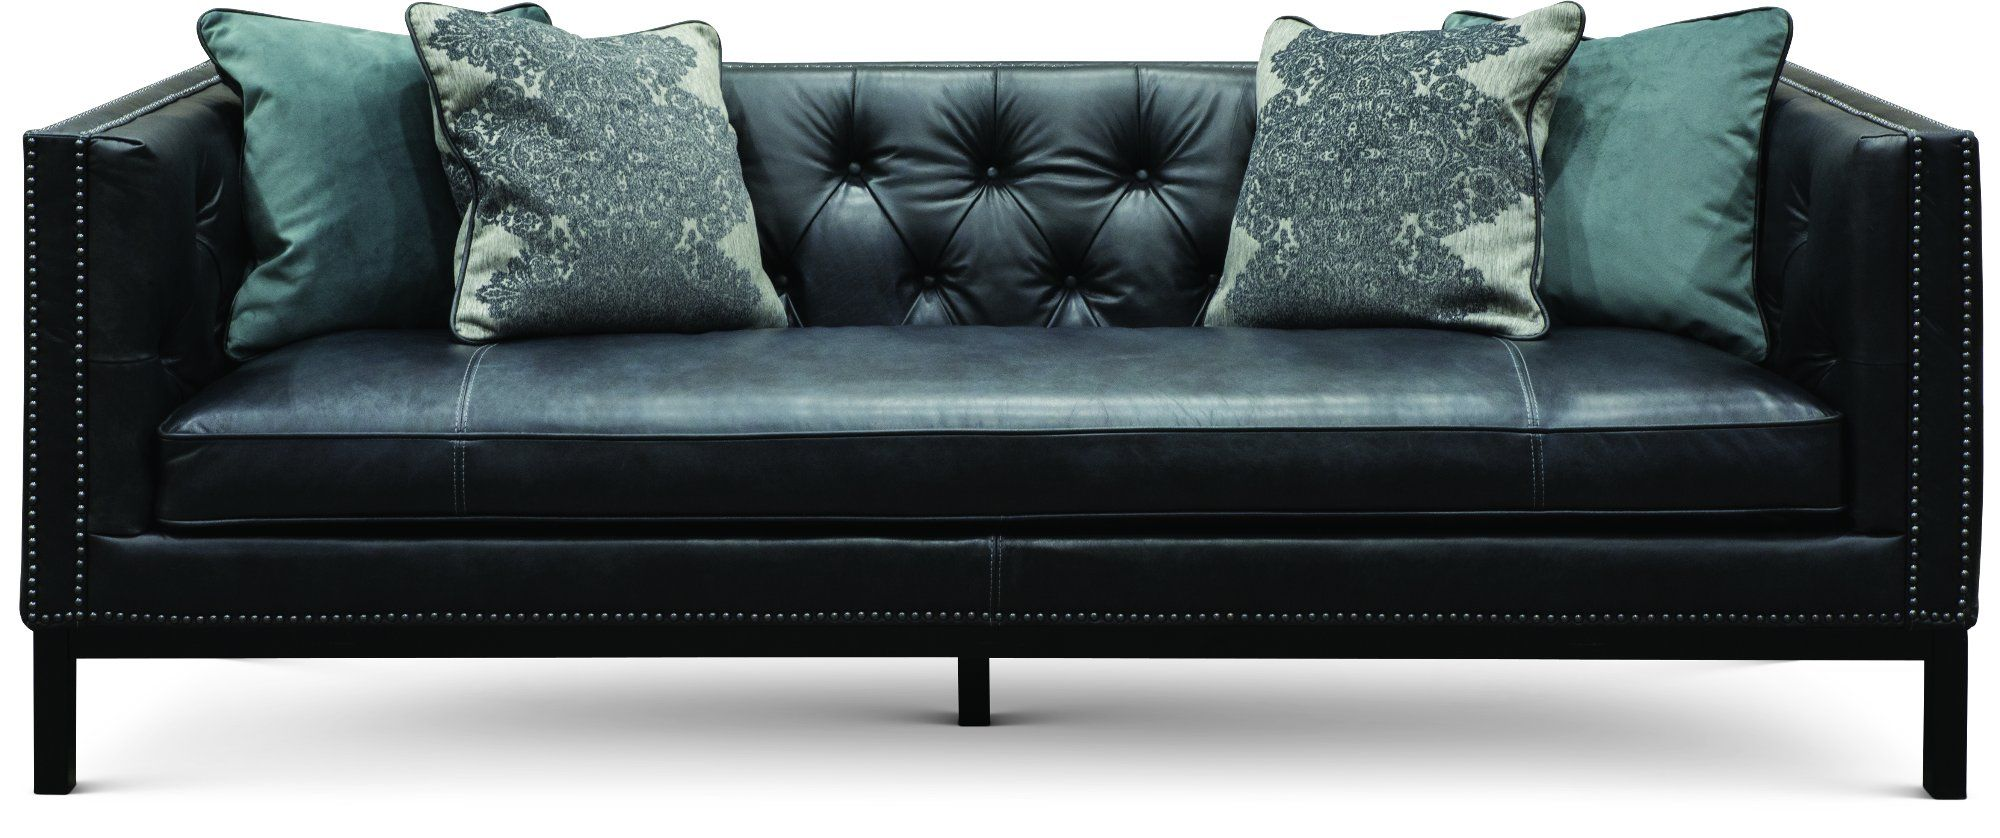 Outstanding Mid Century Modern Black Leather Sofa St James Casa Del Ocoug Best Dining Table And Chair Ideas Images Ocougorg